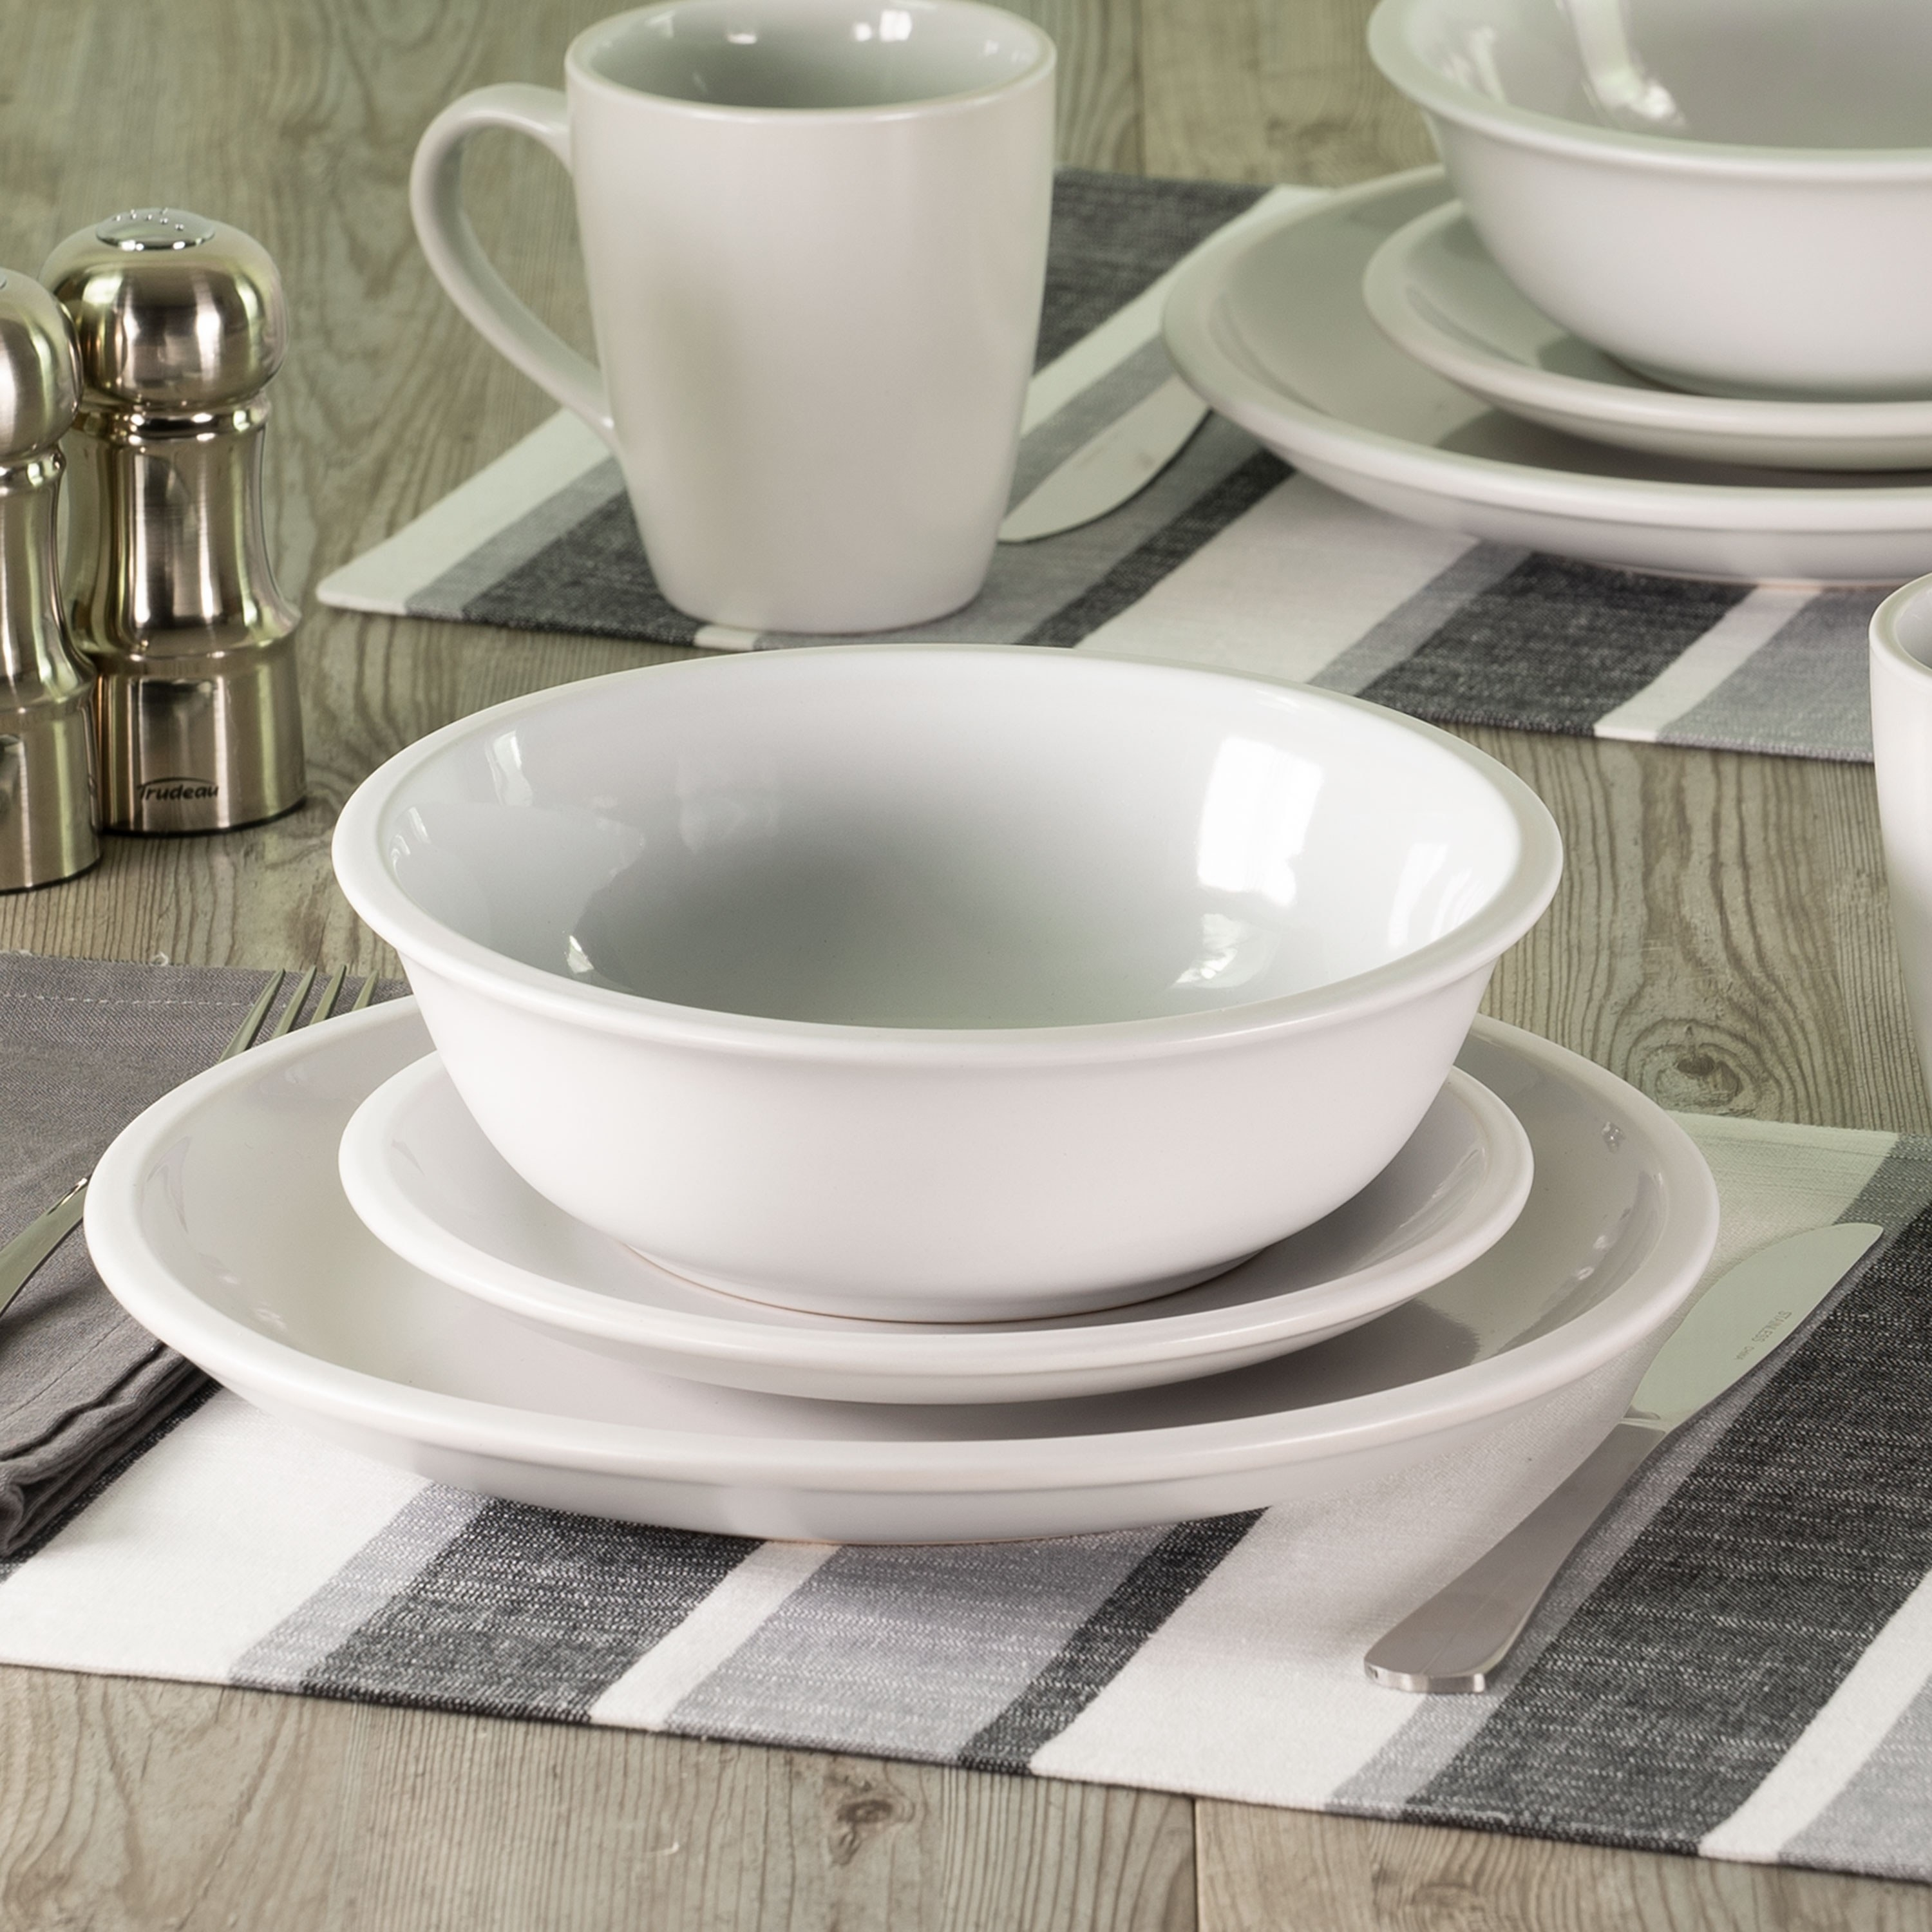 a white dinnerware set includes two plates, one bowl, and a mug